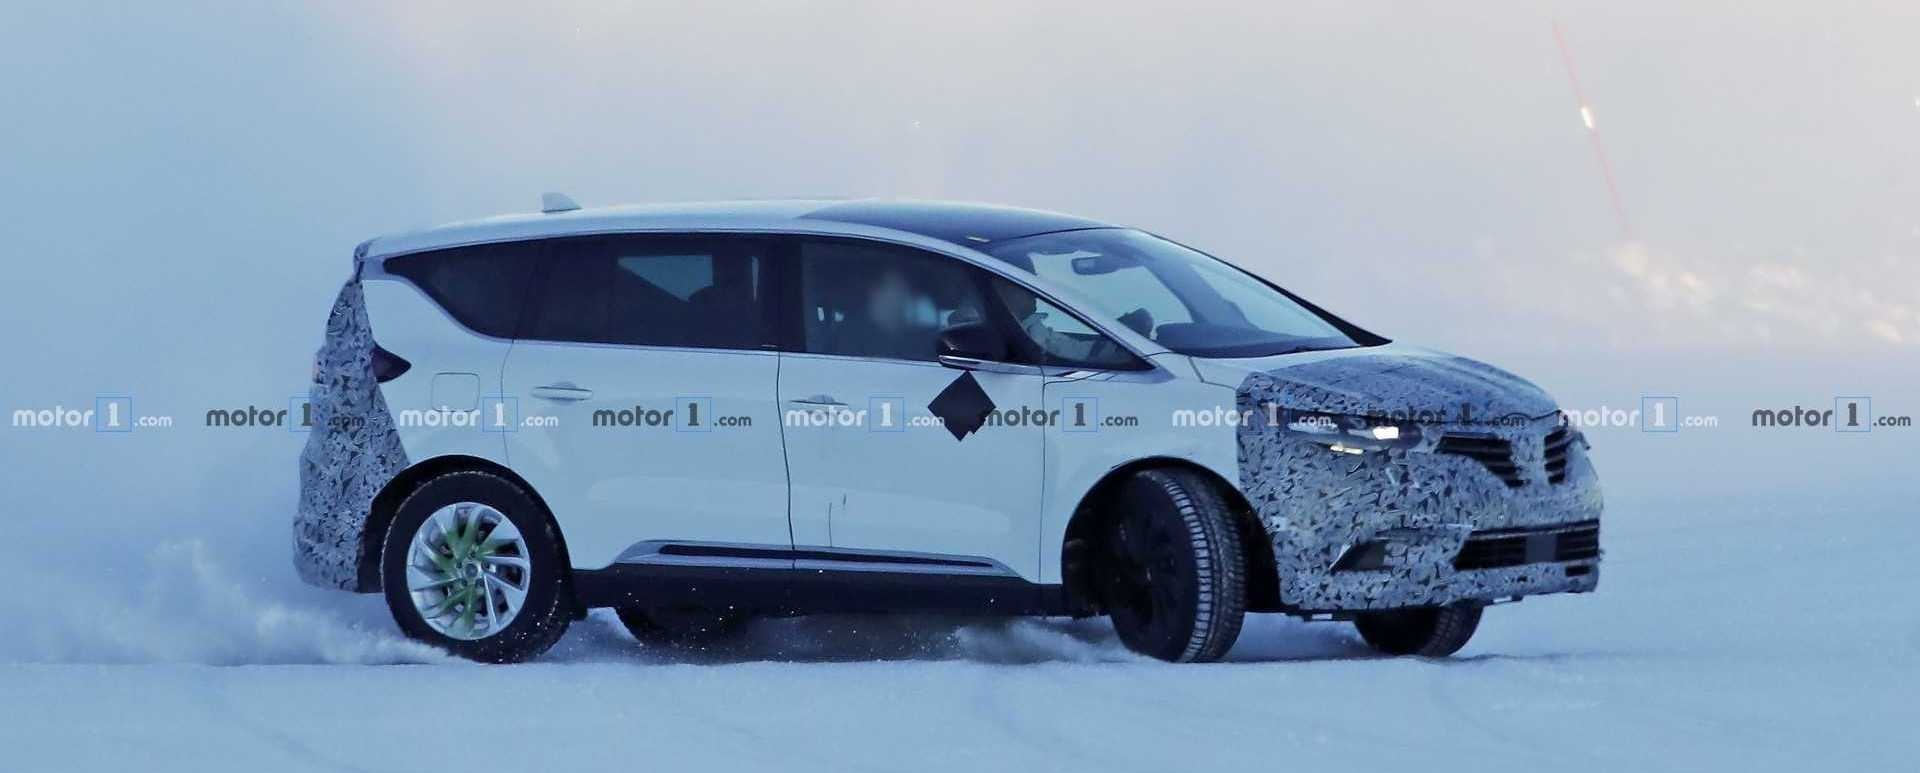 2019 Renault Espace Caught Dancing In The Snow